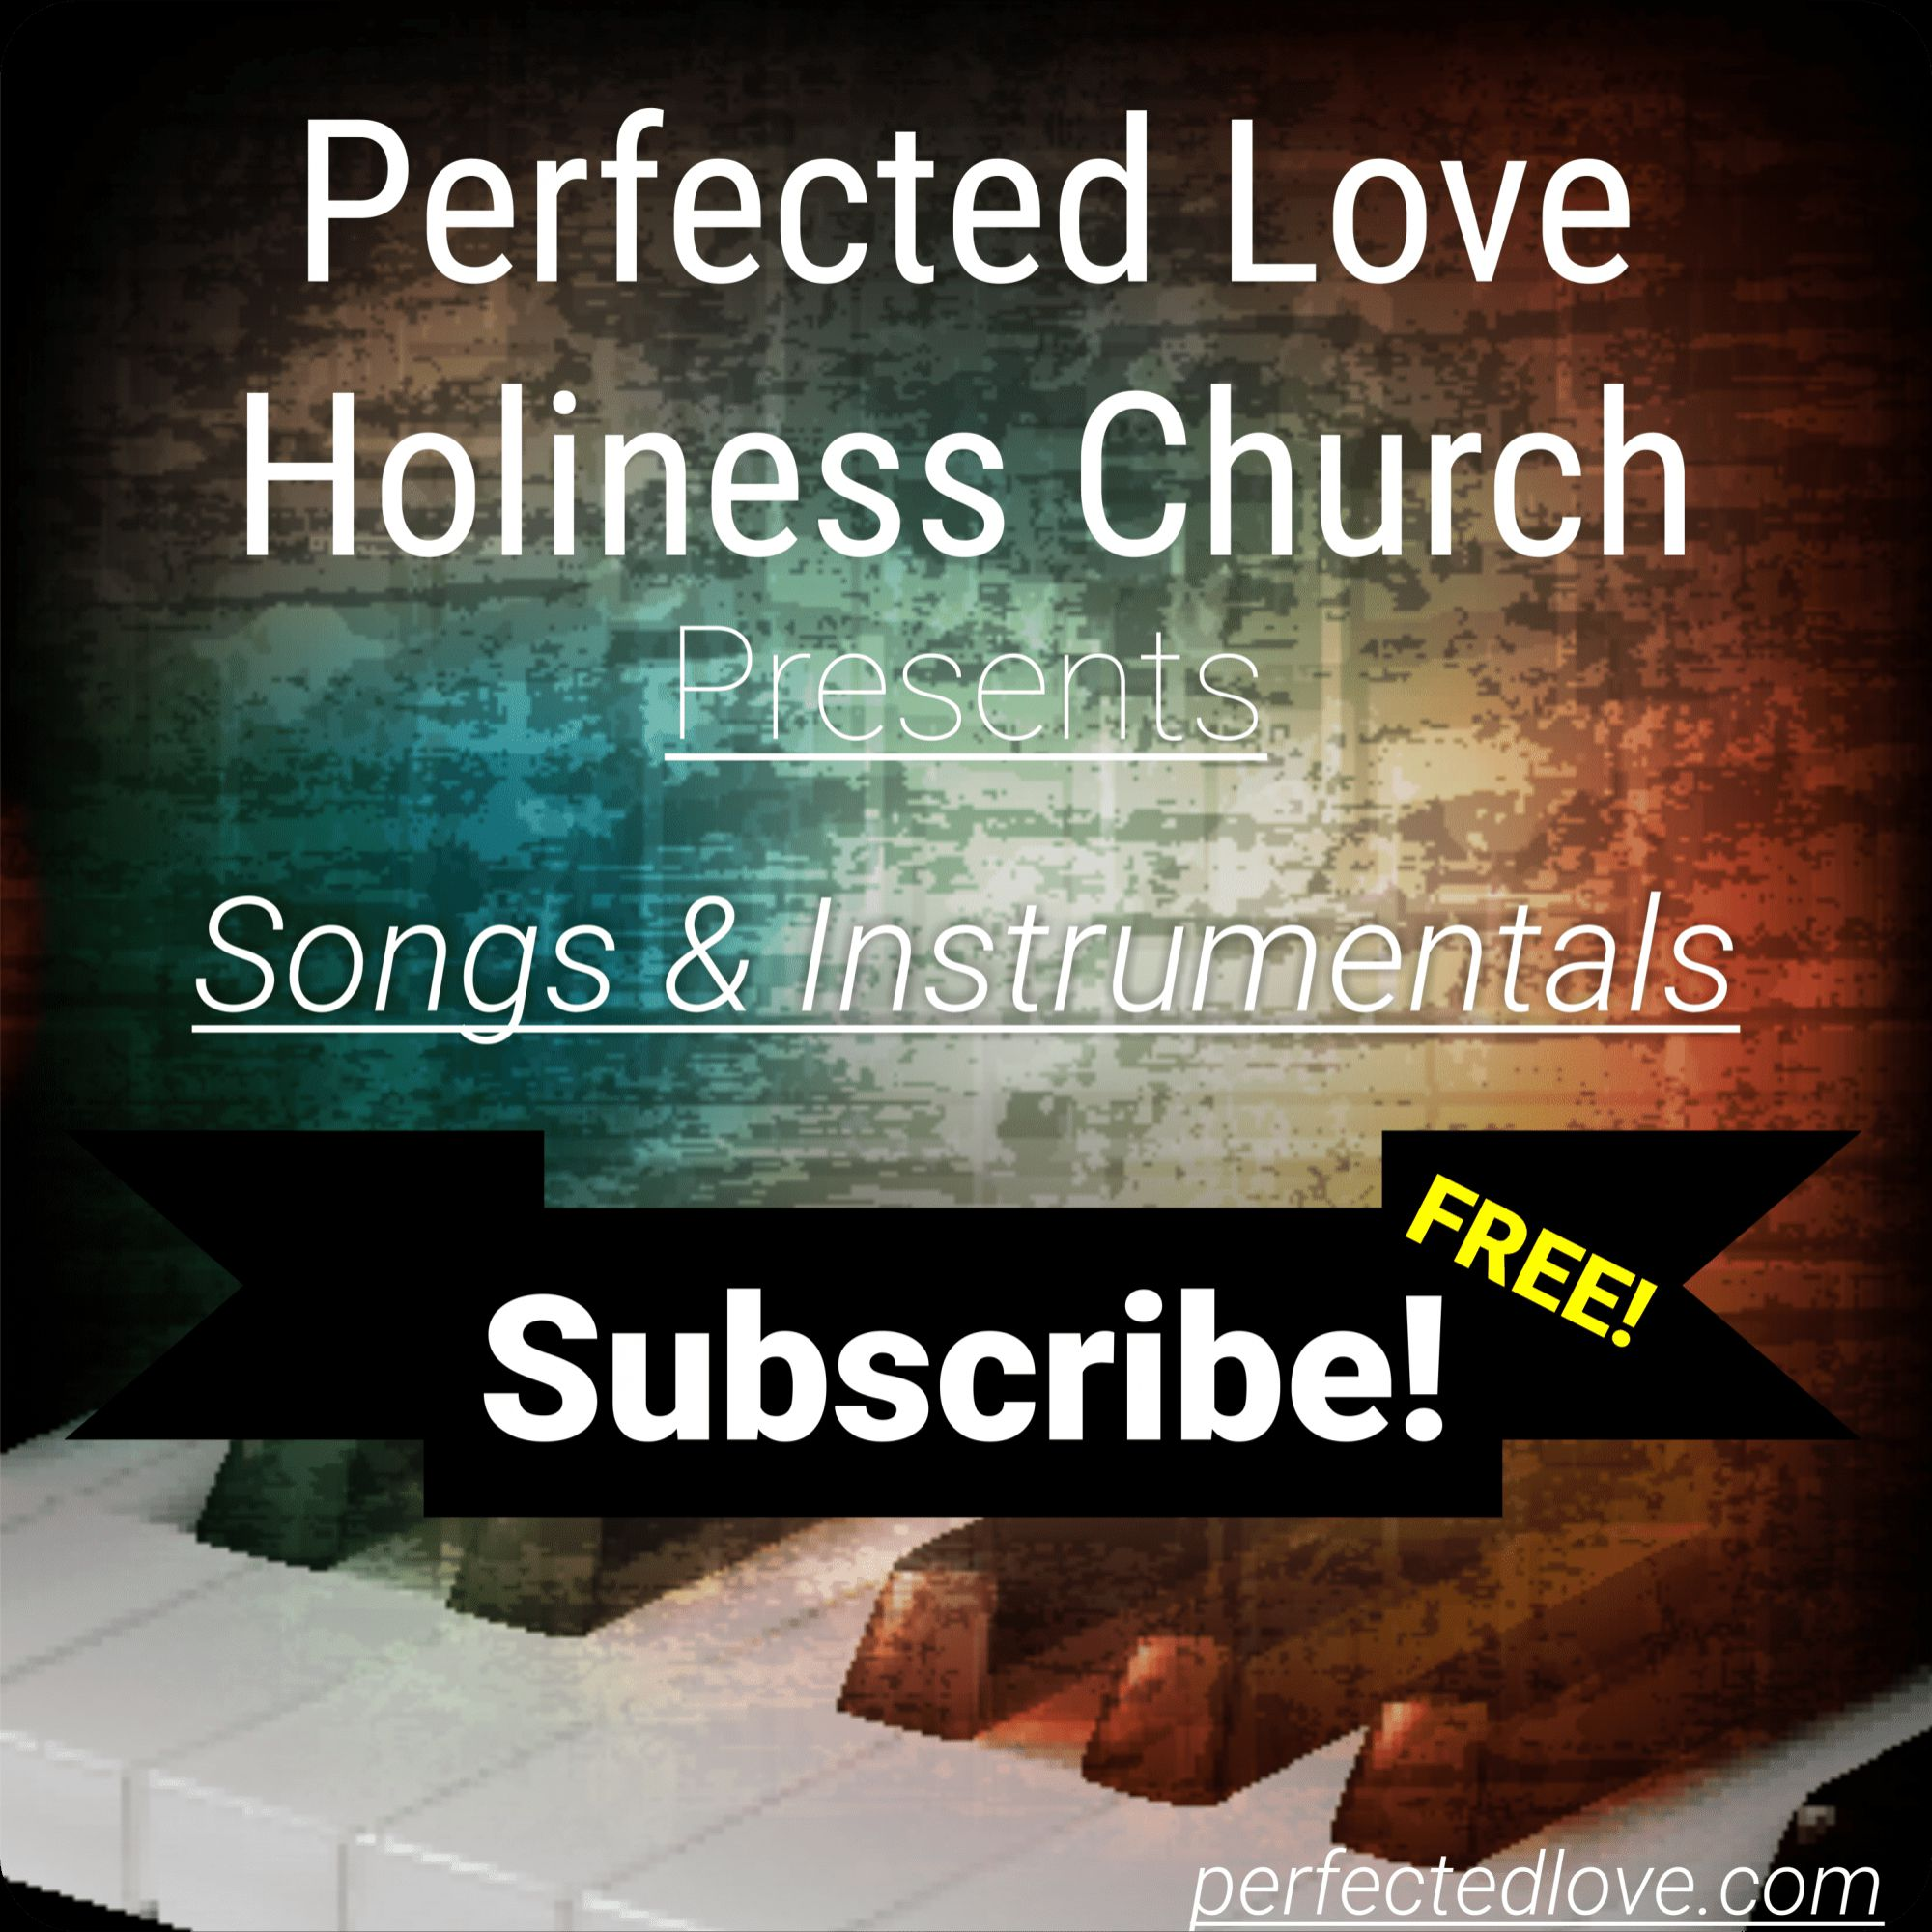 Perfected Love Holiness Church